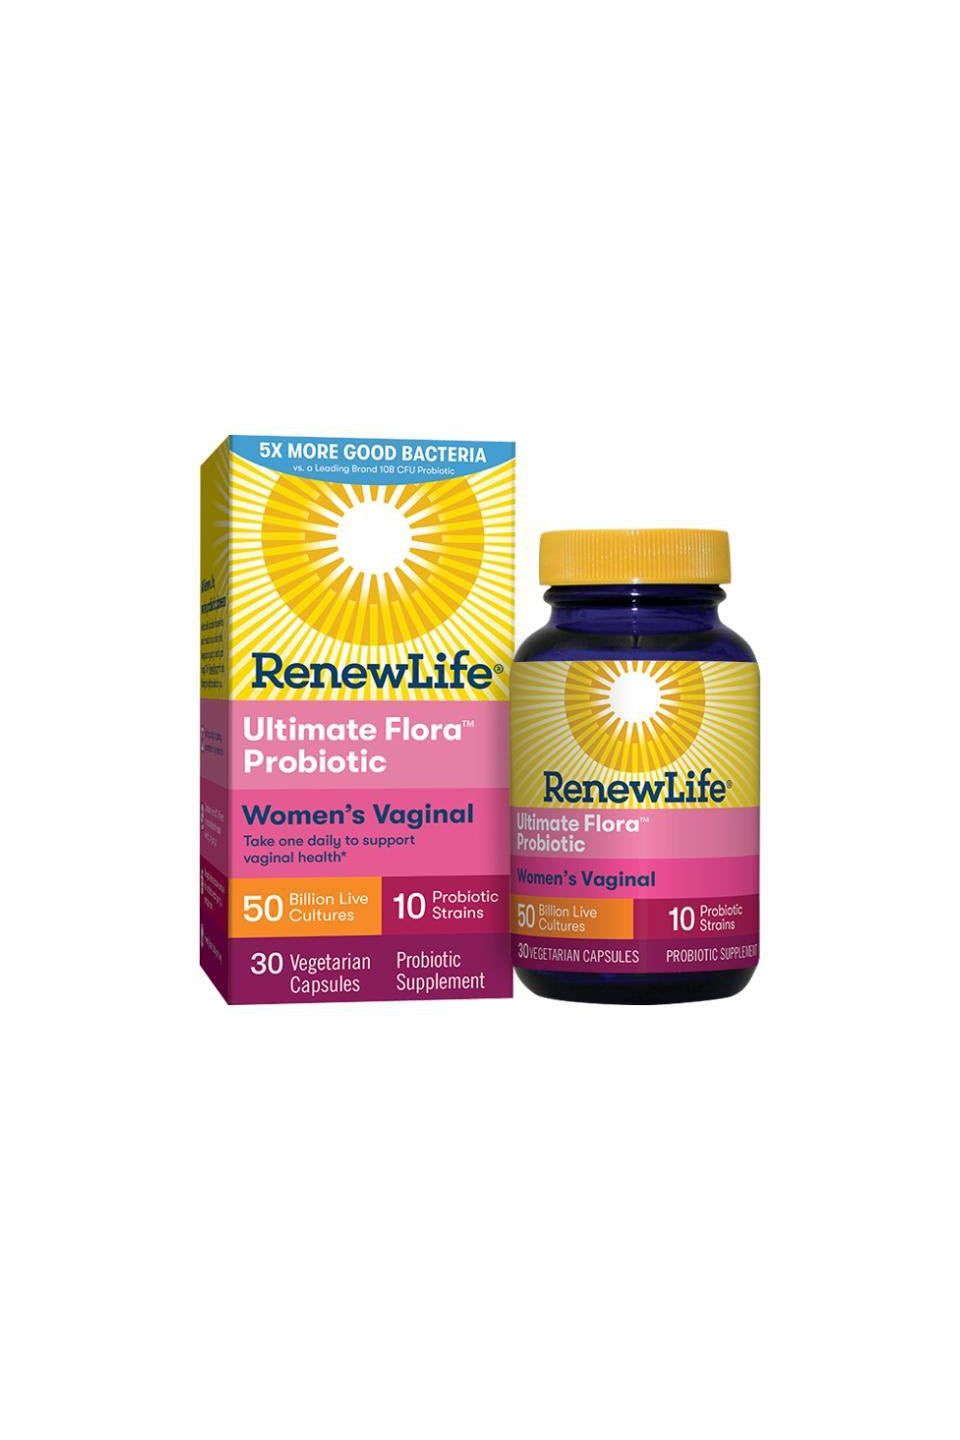 RenewLife Ultimate Flora Women's Vaginal Probiotic 50 billion 36s